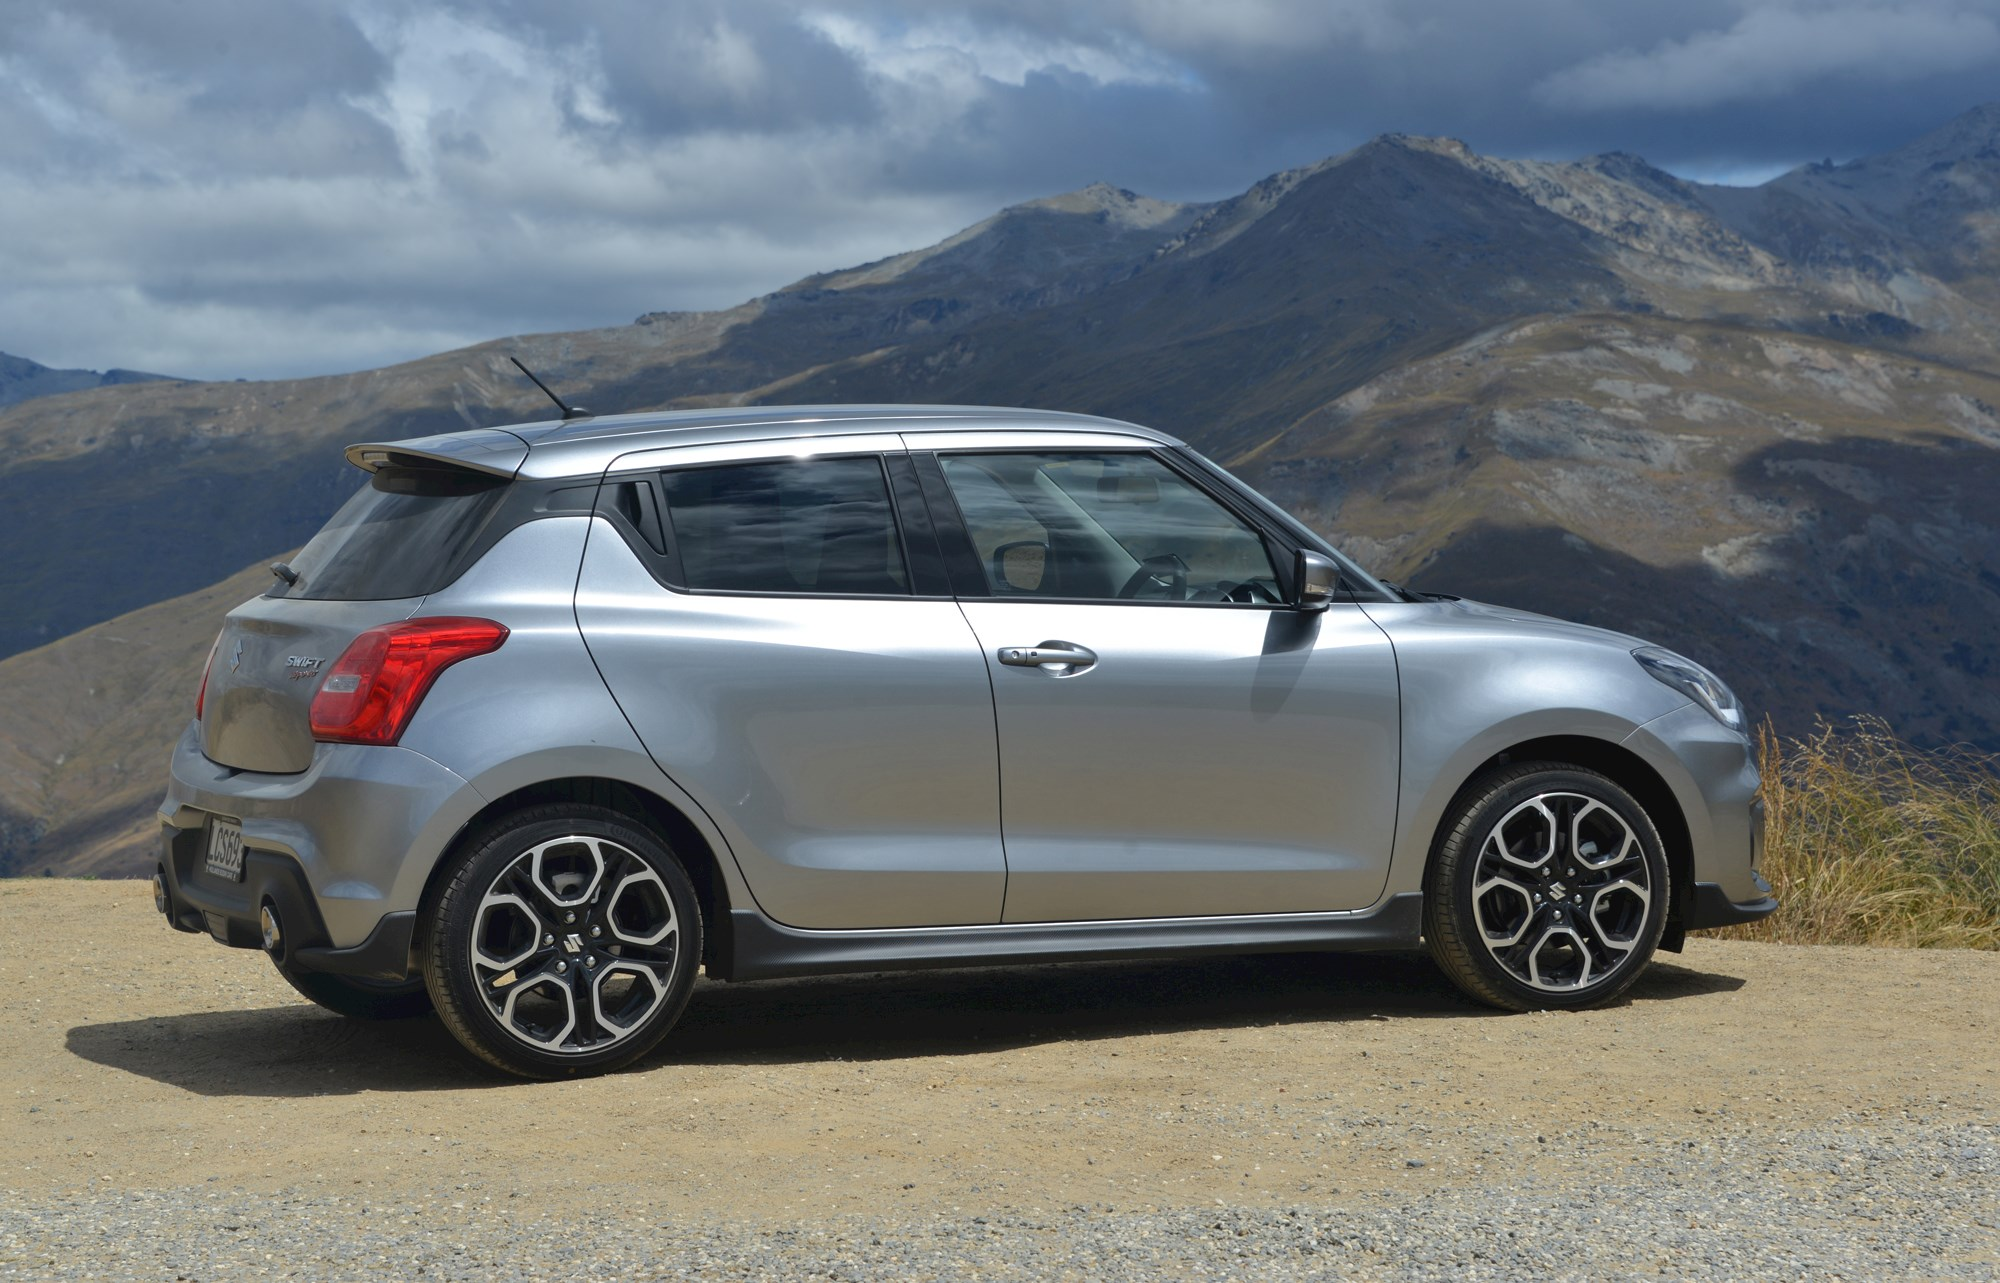 suzuki sport swift new turbo hot hatch flexes its muscles. Black Bedroom Furniture Sets. Home Design Ideas